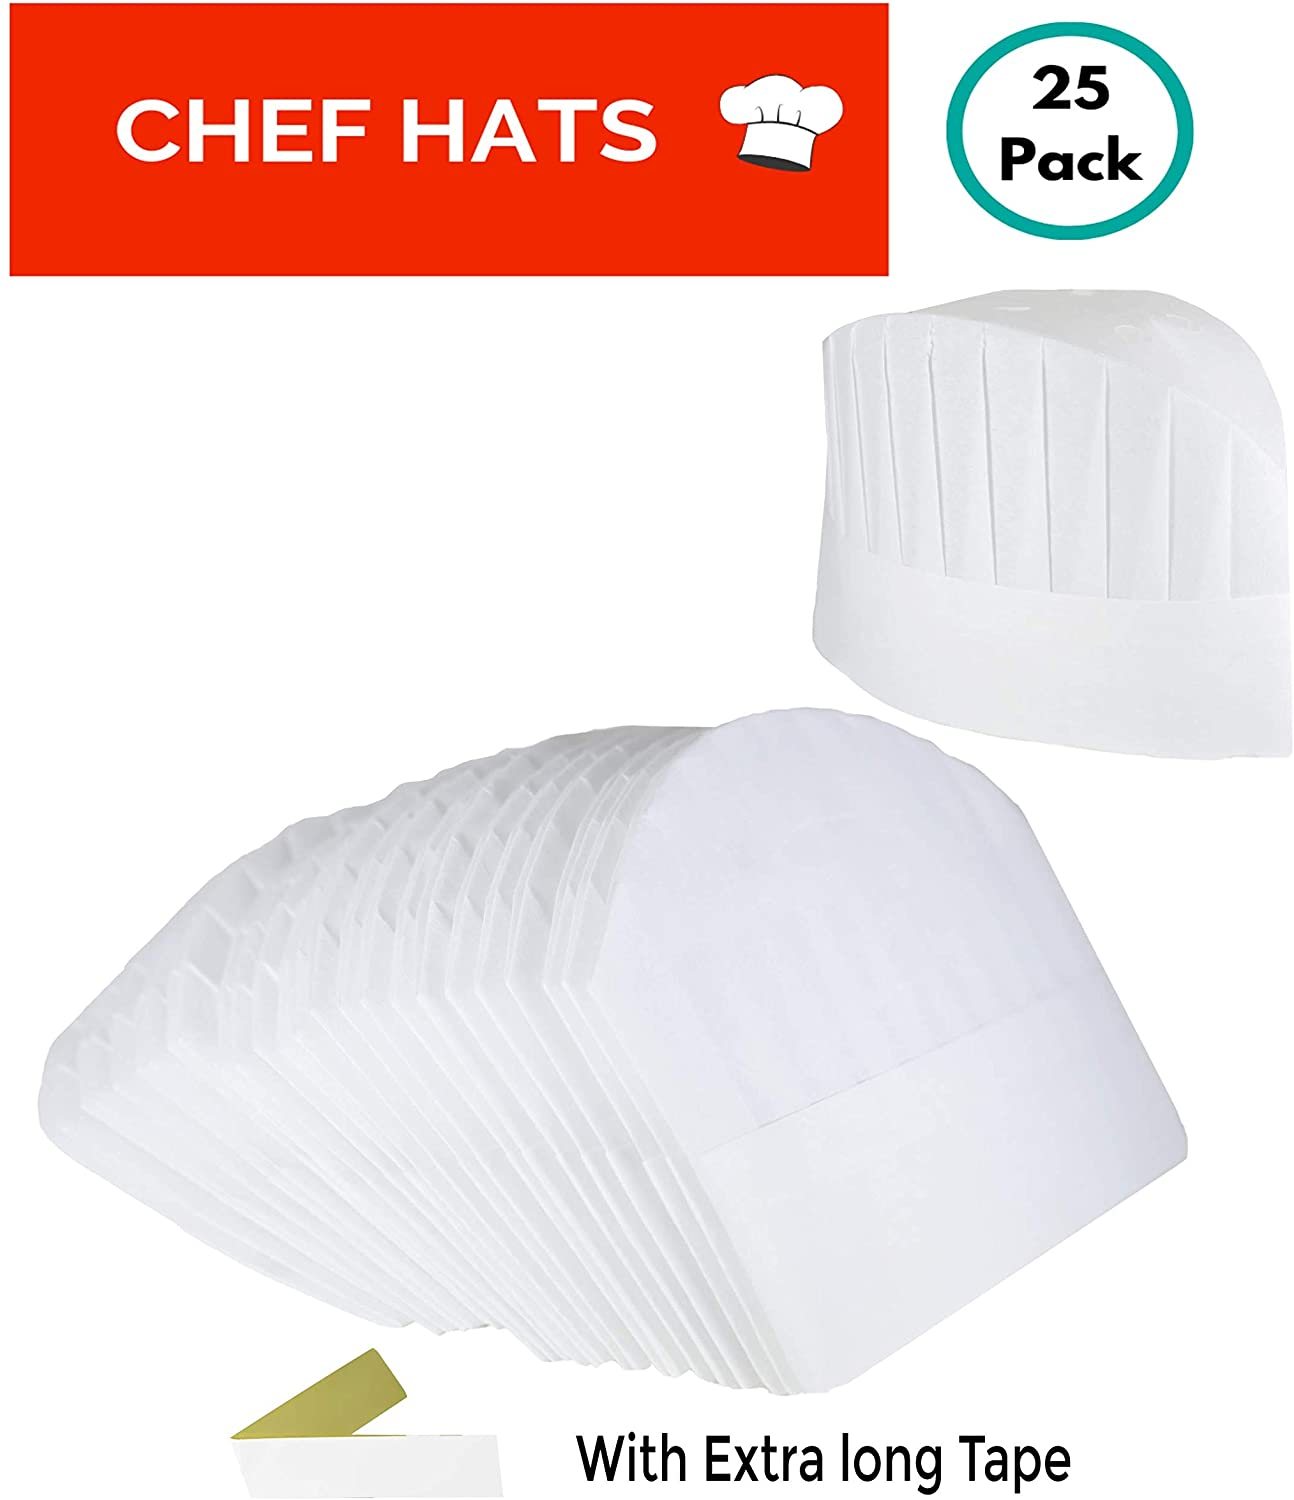 Disposable Paper Chef Hats – 25 Pack Adjustable White Toques for Kids & Adults